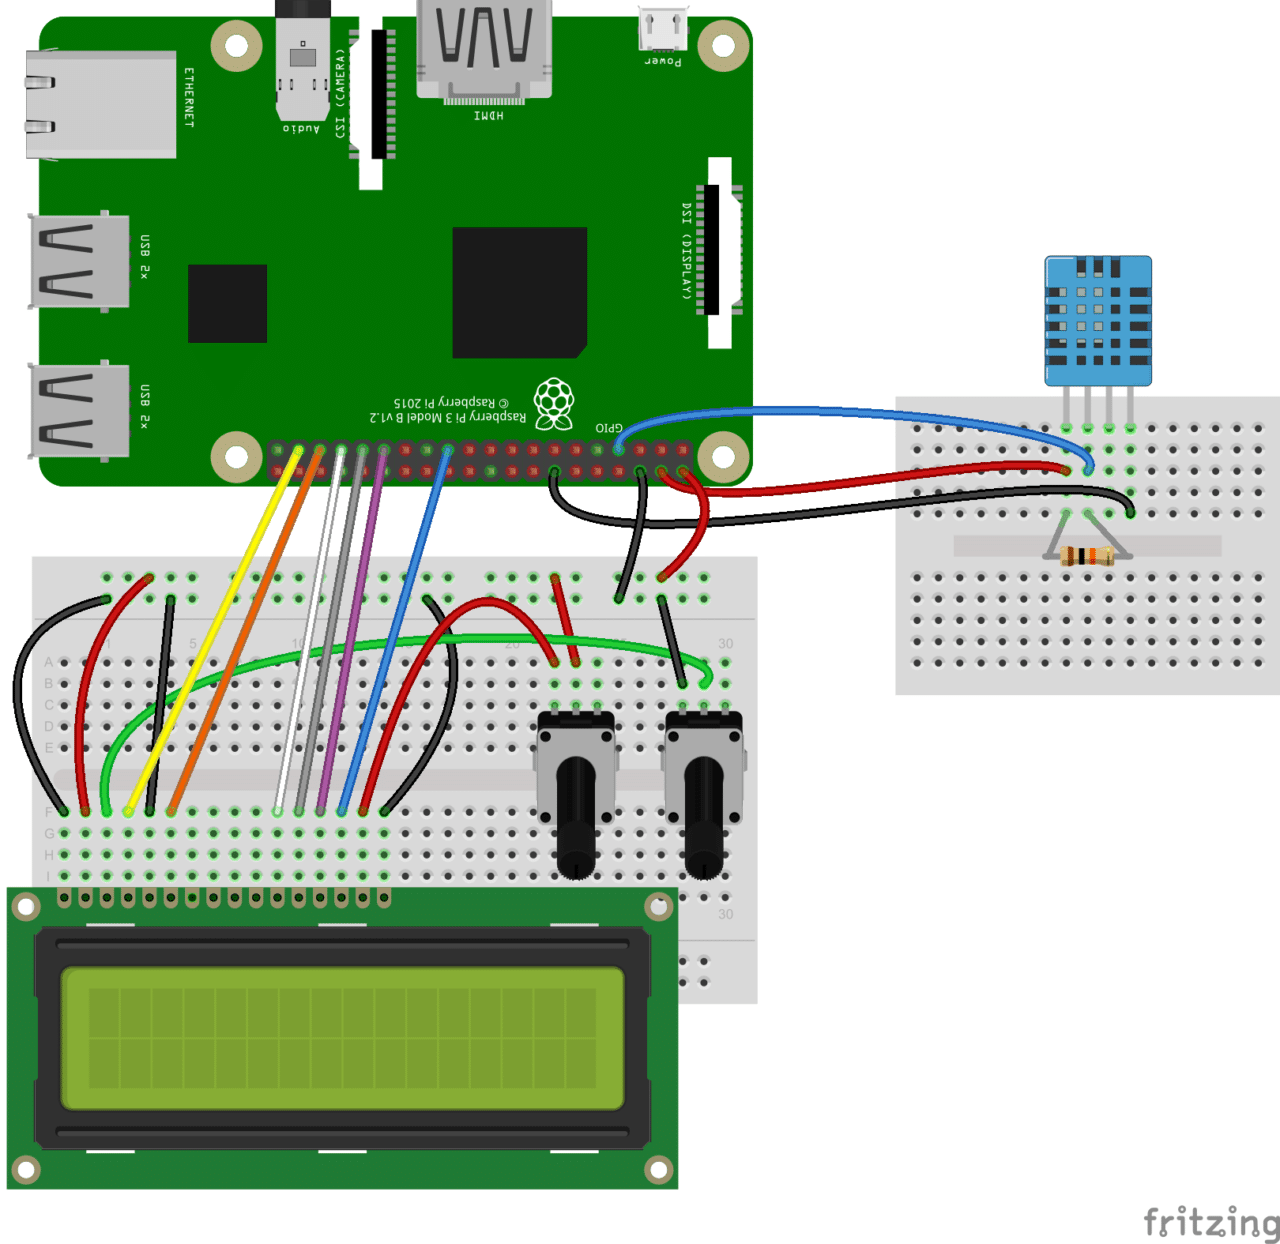 How to Setup the DHT11 on the Raspberry Pi Four pin DHT11 LCD Wiring Diagram how to set up the dht11 humidity sensor on the raspberry pi raspberry pi wiring diagram at reclaimingppi.co